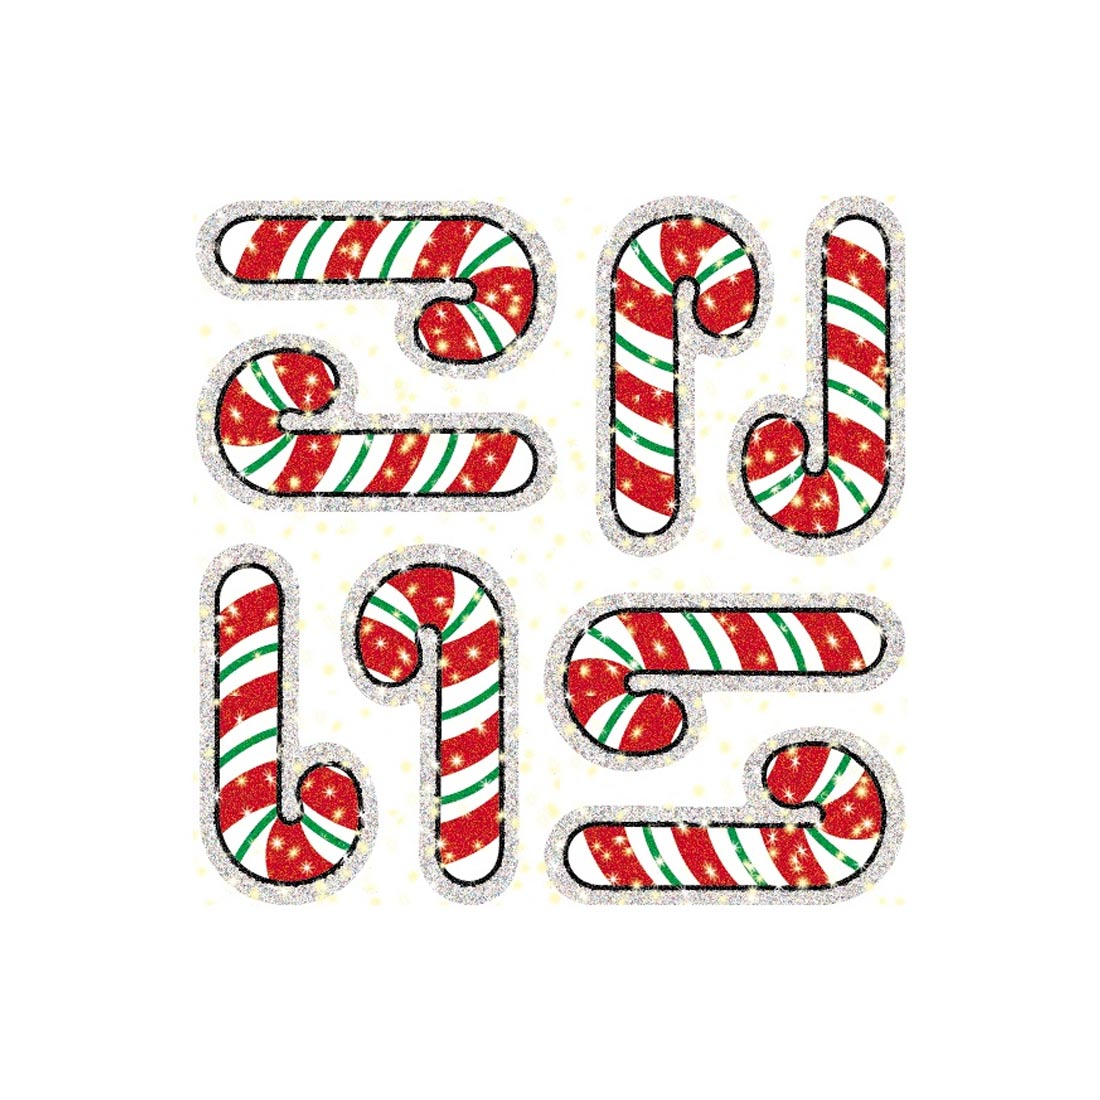 Candy Canes Dazzle Stickers Super Packs by Carson-Dellosa